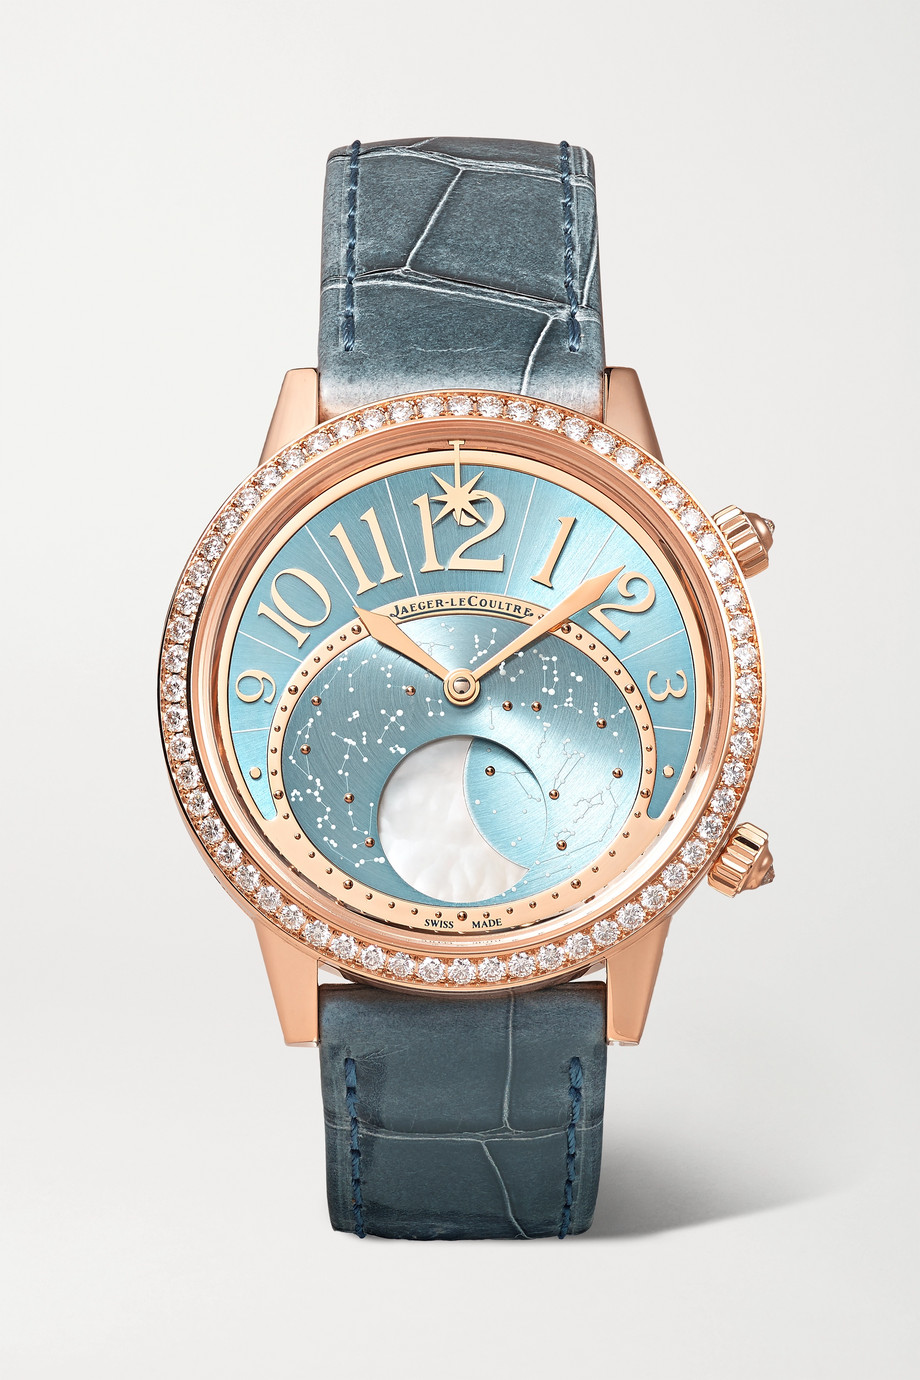 JAEGER-LECOULTRE Rendez-Vous Moon Serenity Automatic 36mm 18-karat rose gold, alligator and diamond watch